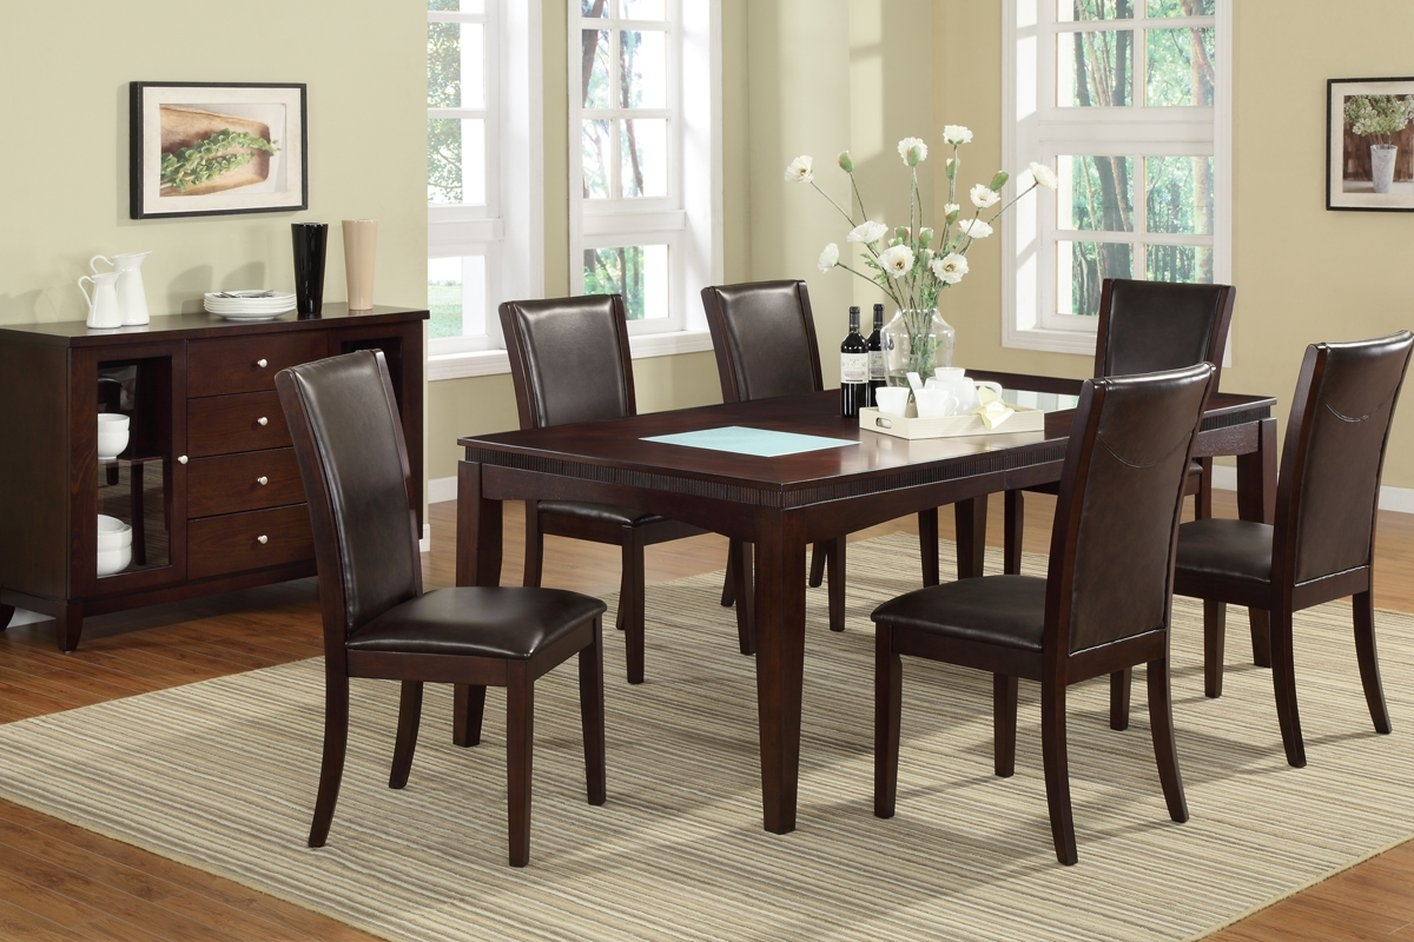 Brown Glass Dining Table – Steal A Sofa Furniture Outlet Los Angeles Ca With Regard To Sofa Chairs With Dining Table (Image 2 of 10)